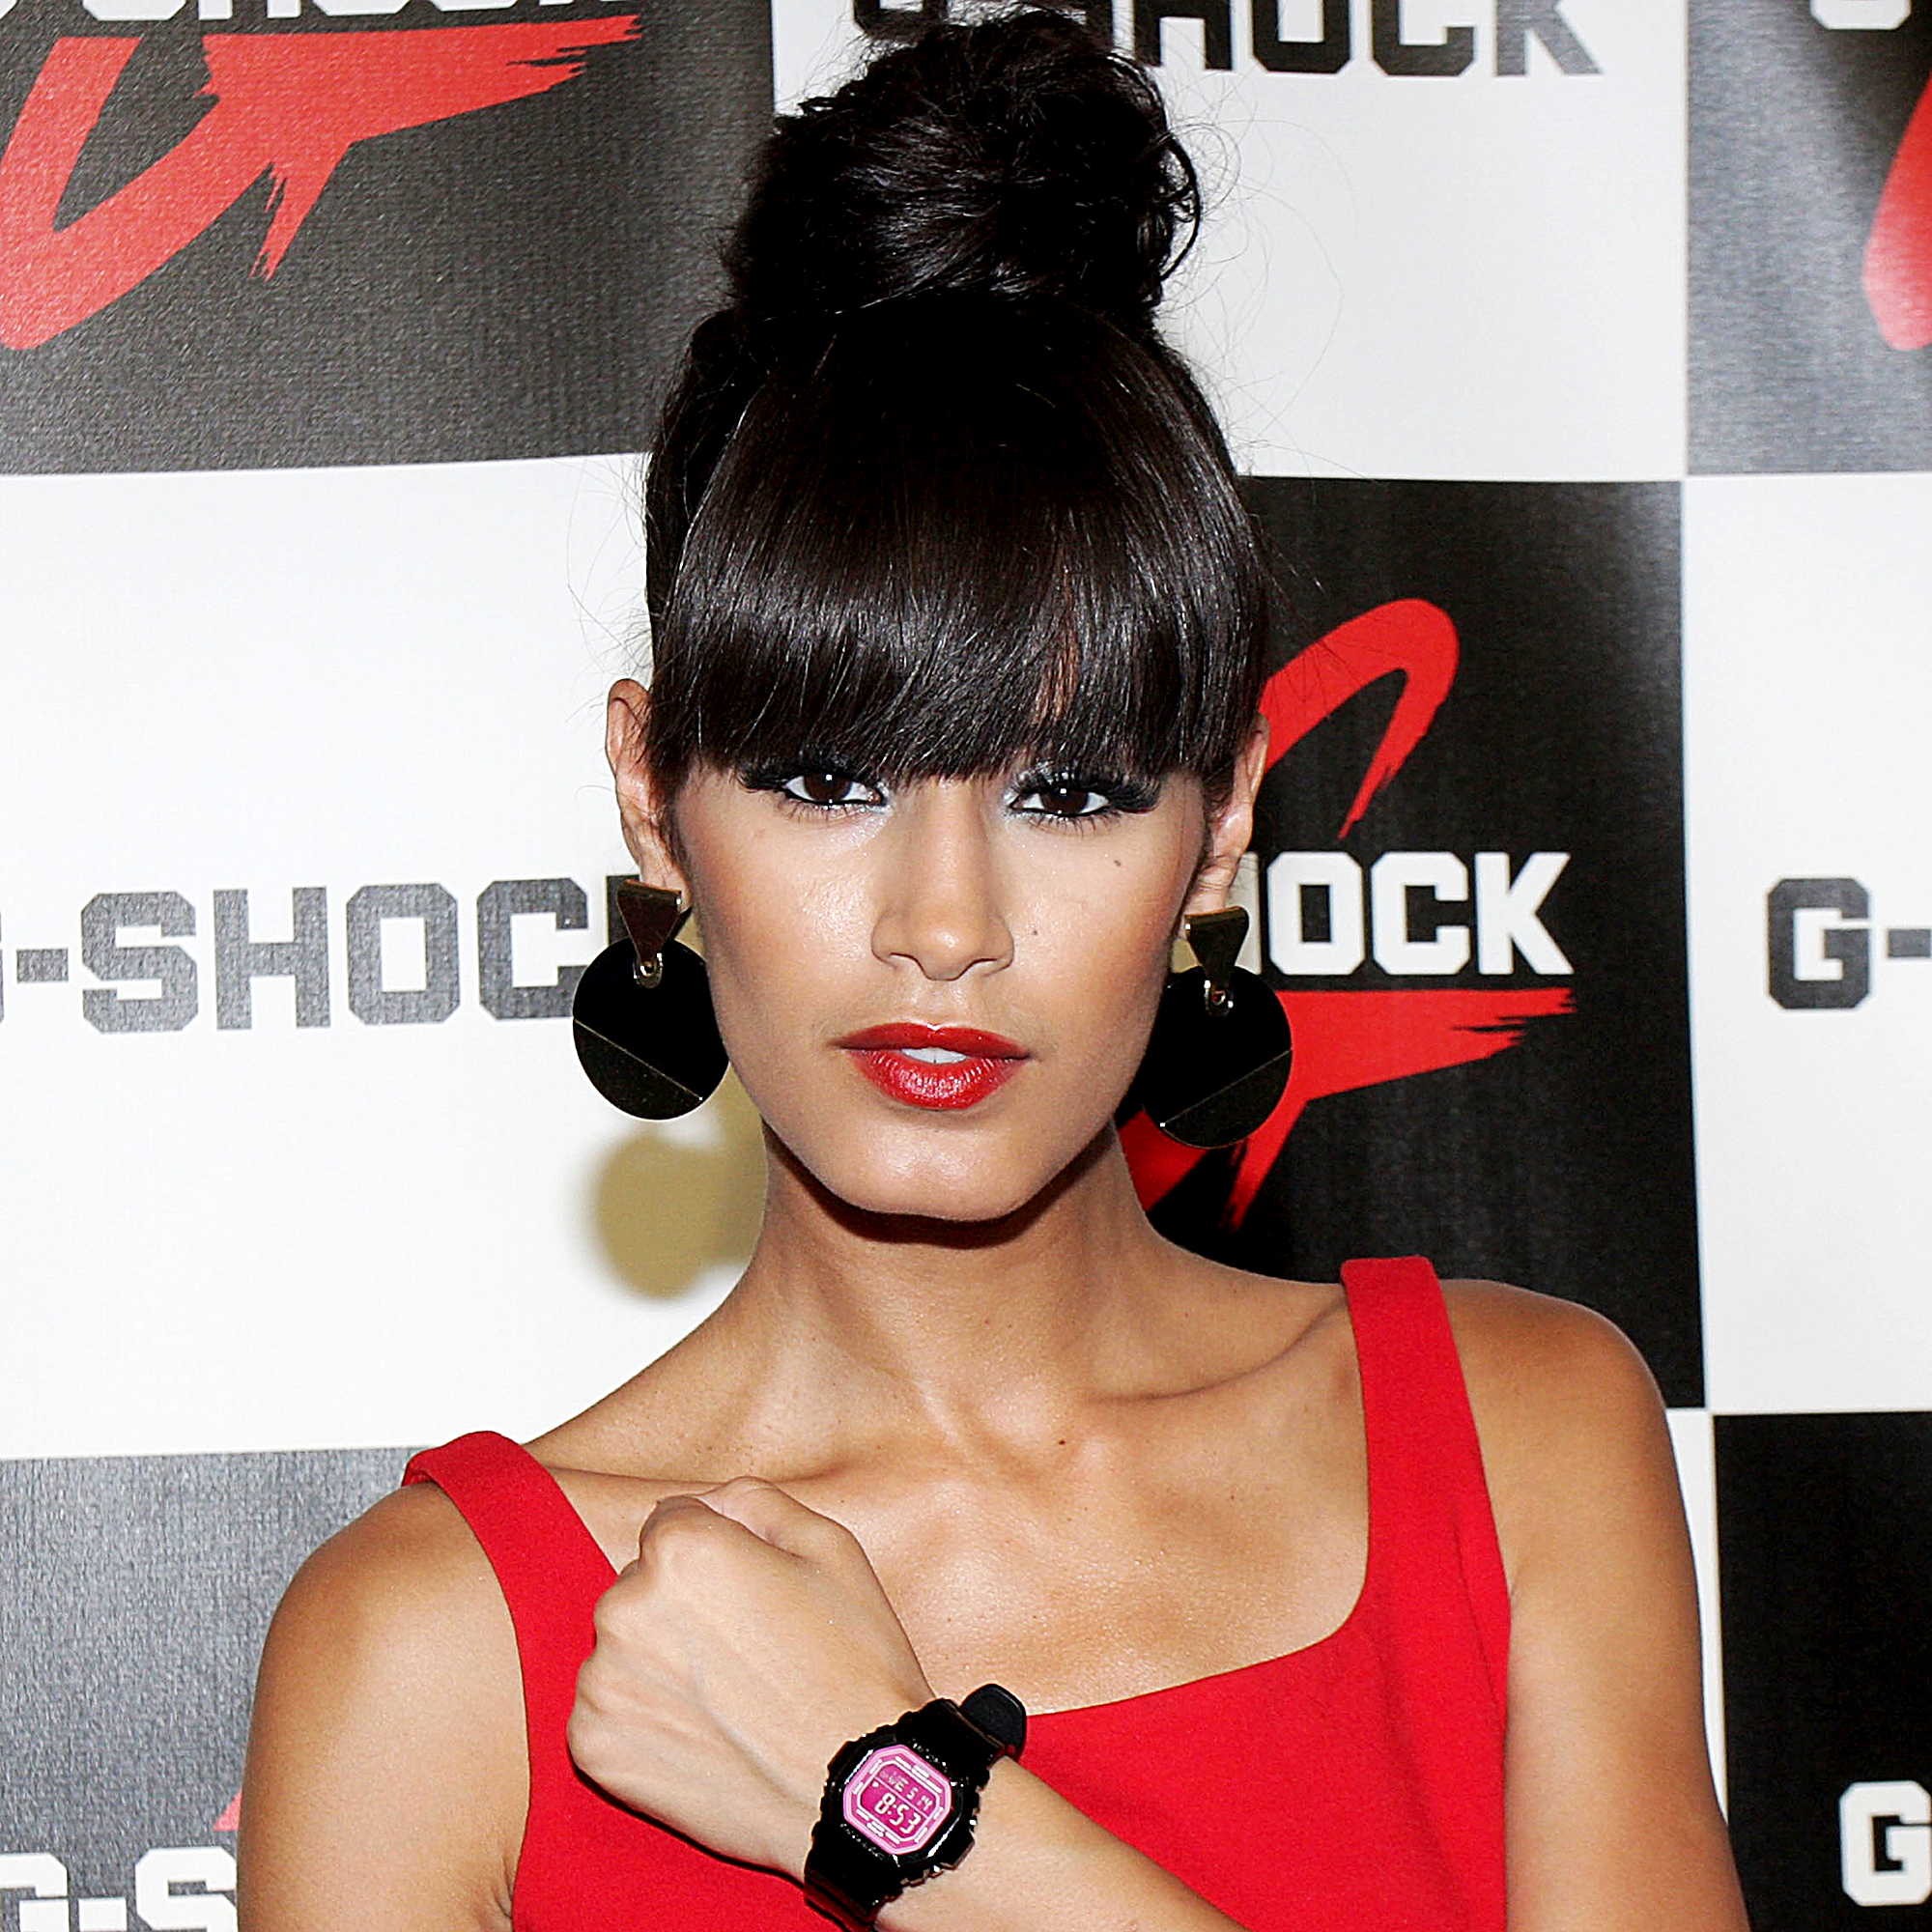 """Jaslene-Gonzalez - The America's Next Top Model winner said she was physically and mentally abused by her ex-boyfriend. """"It was such a dark moment in my life,"""" she said."""